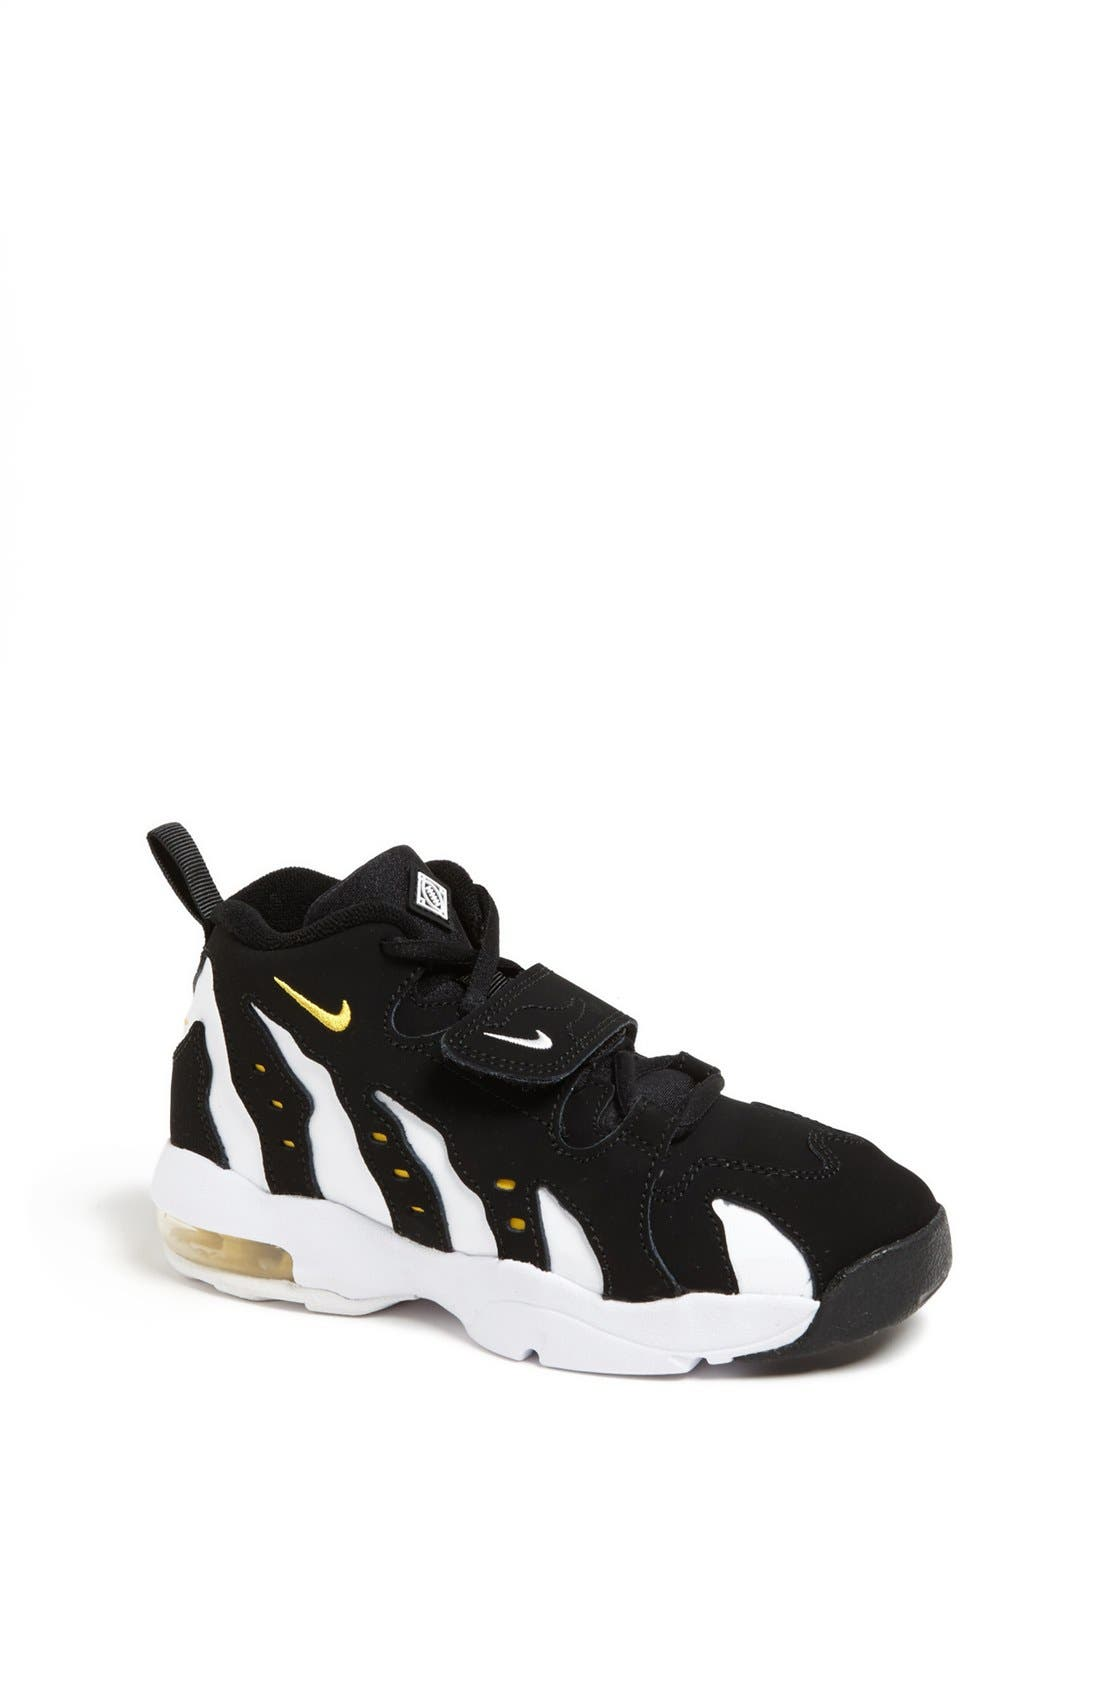 Alternate Image 1 Selected - Nike 'Air DT Max '96' Sneaker (Toddler & Little Kid)